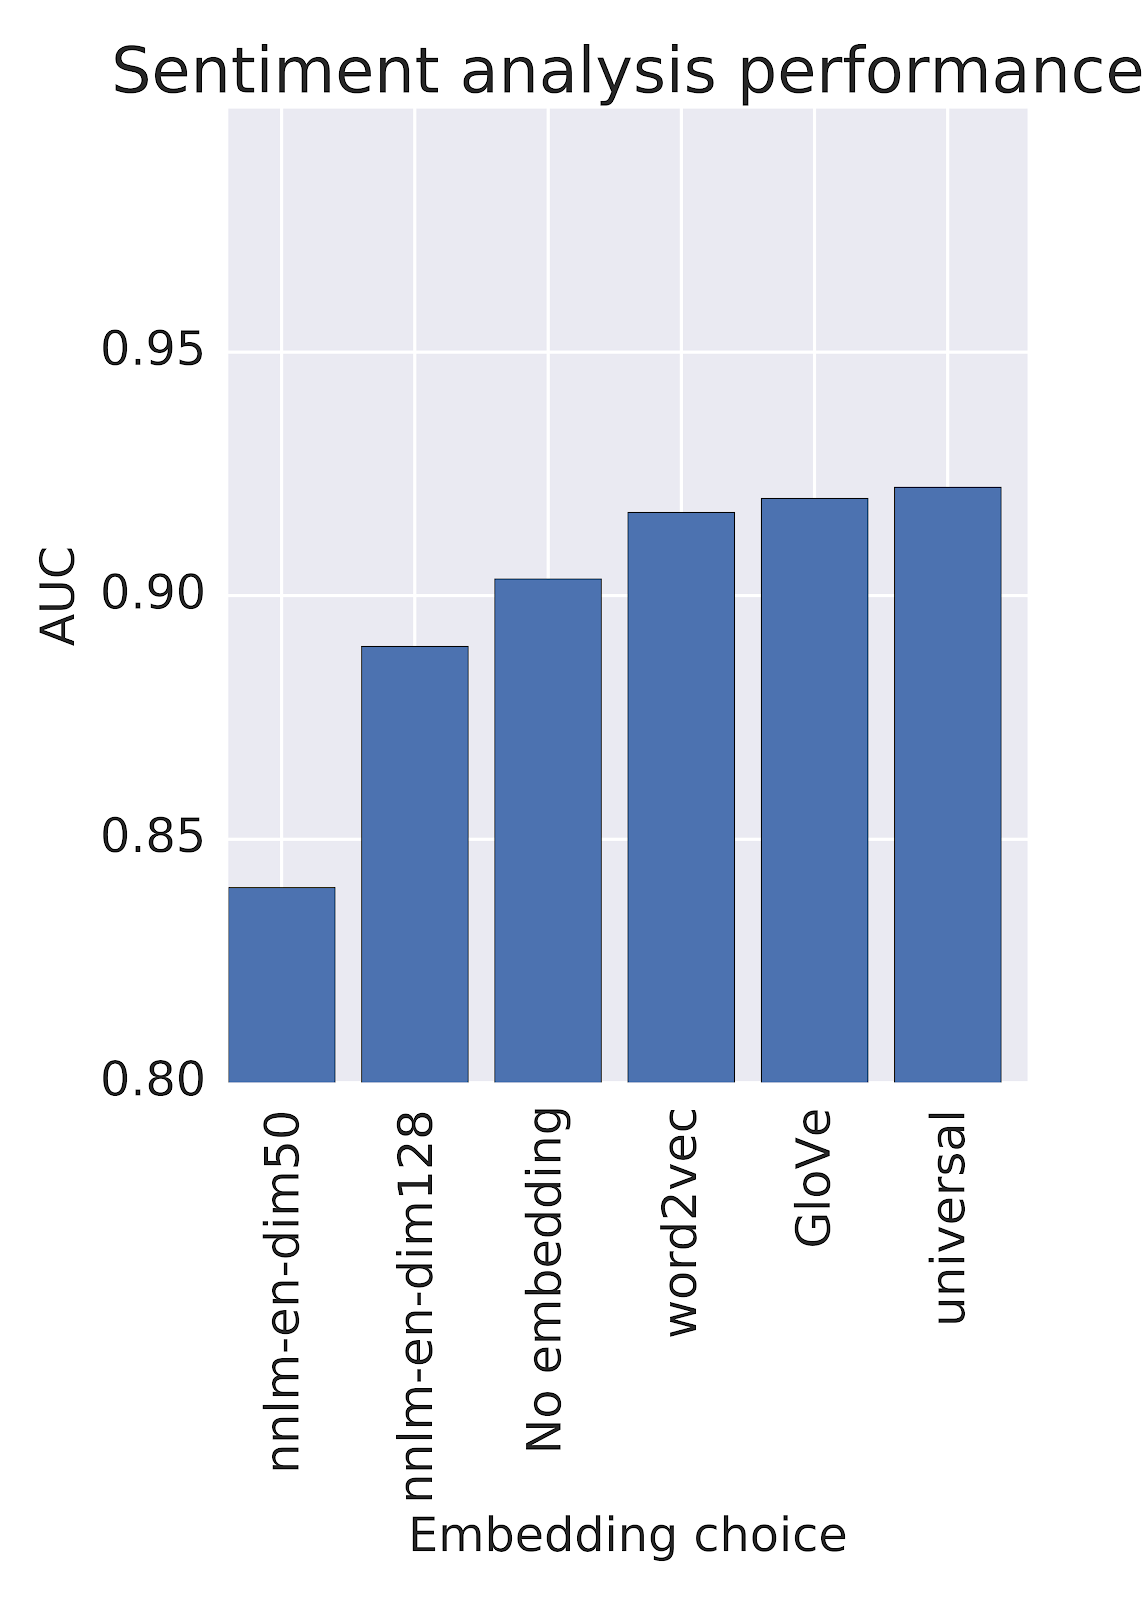 Google Developers Blog: Text Embedding Models Contain Bias